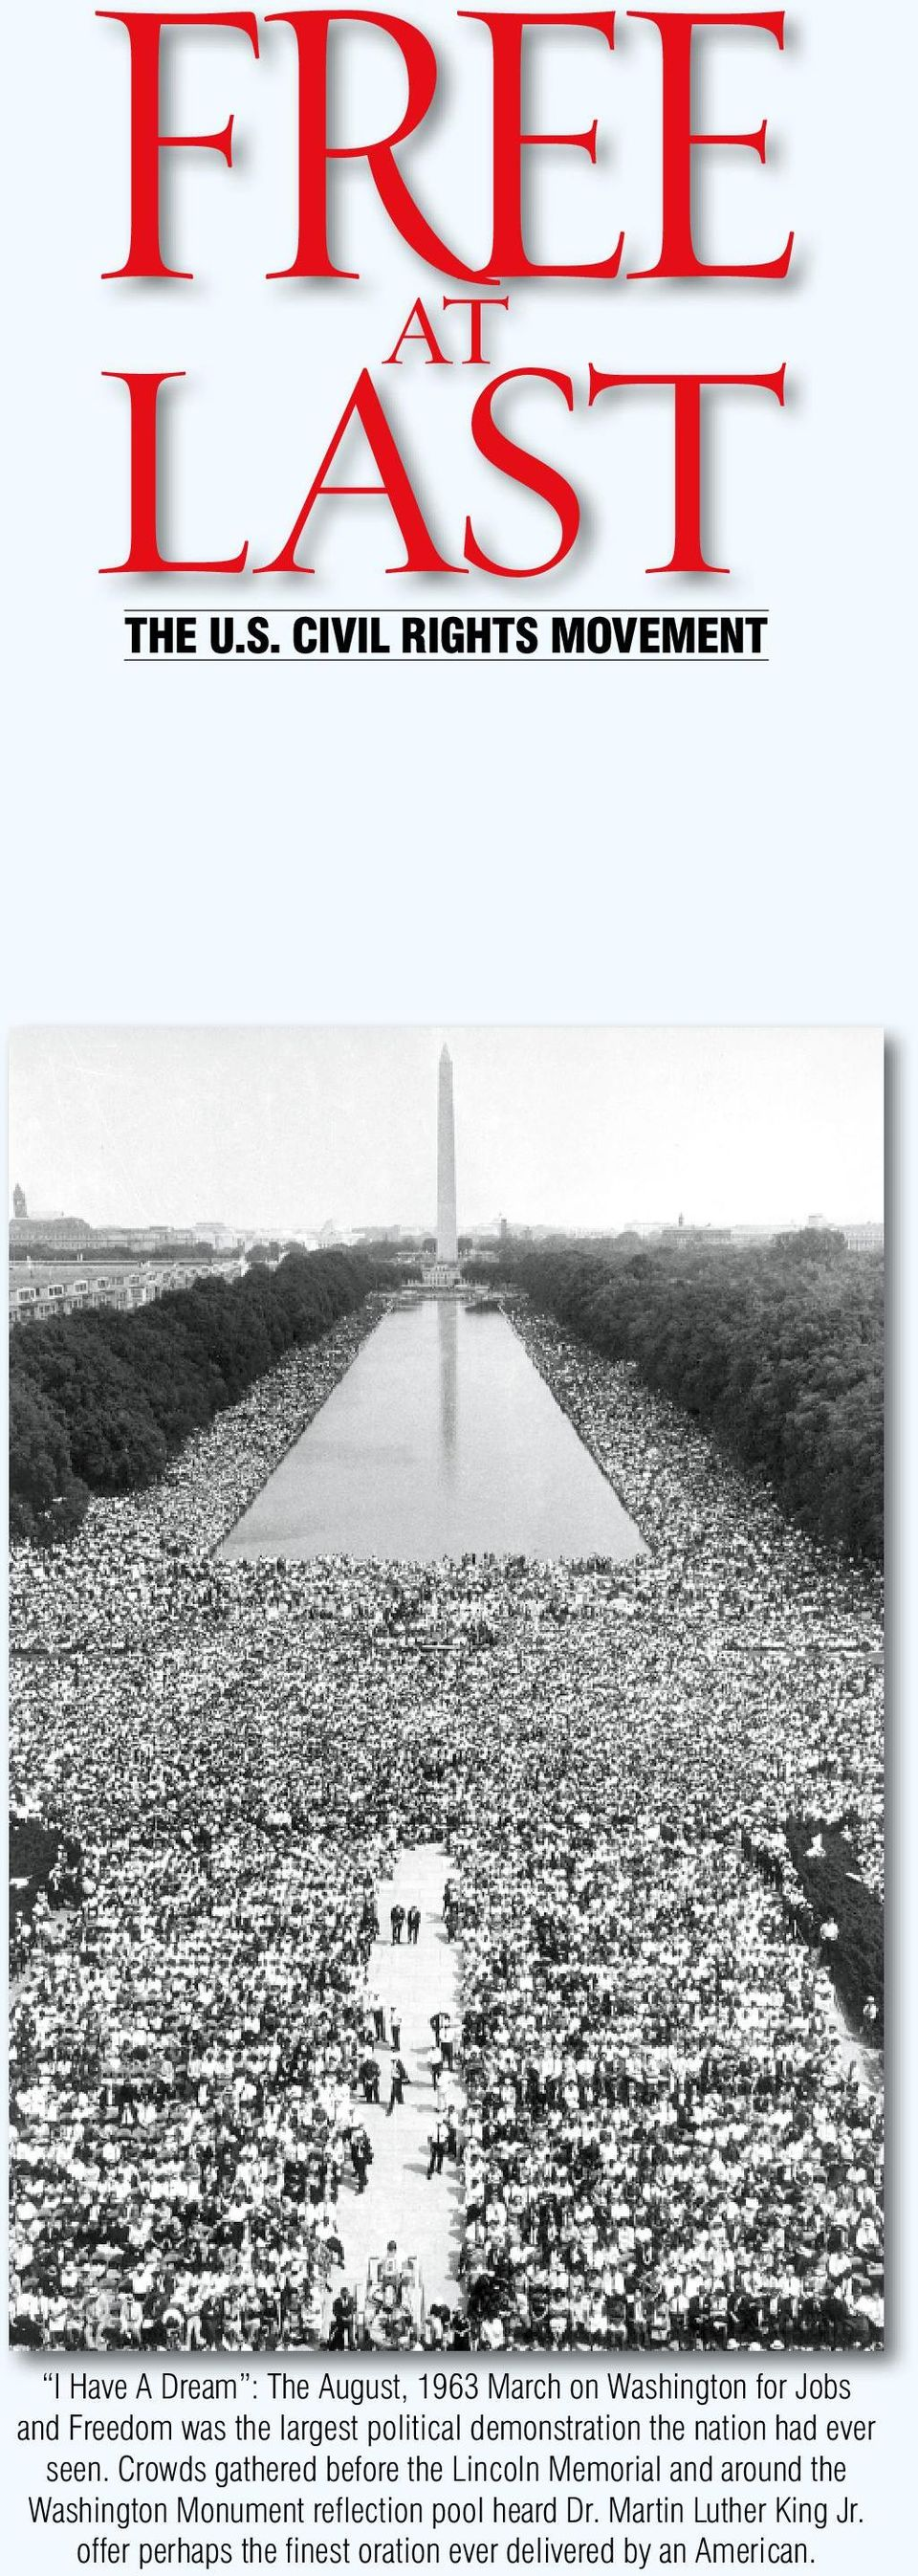 CIVIL RIGHTS MOVEMENT I Have A Dream : The August, 1963 March on Washington for Jobs and